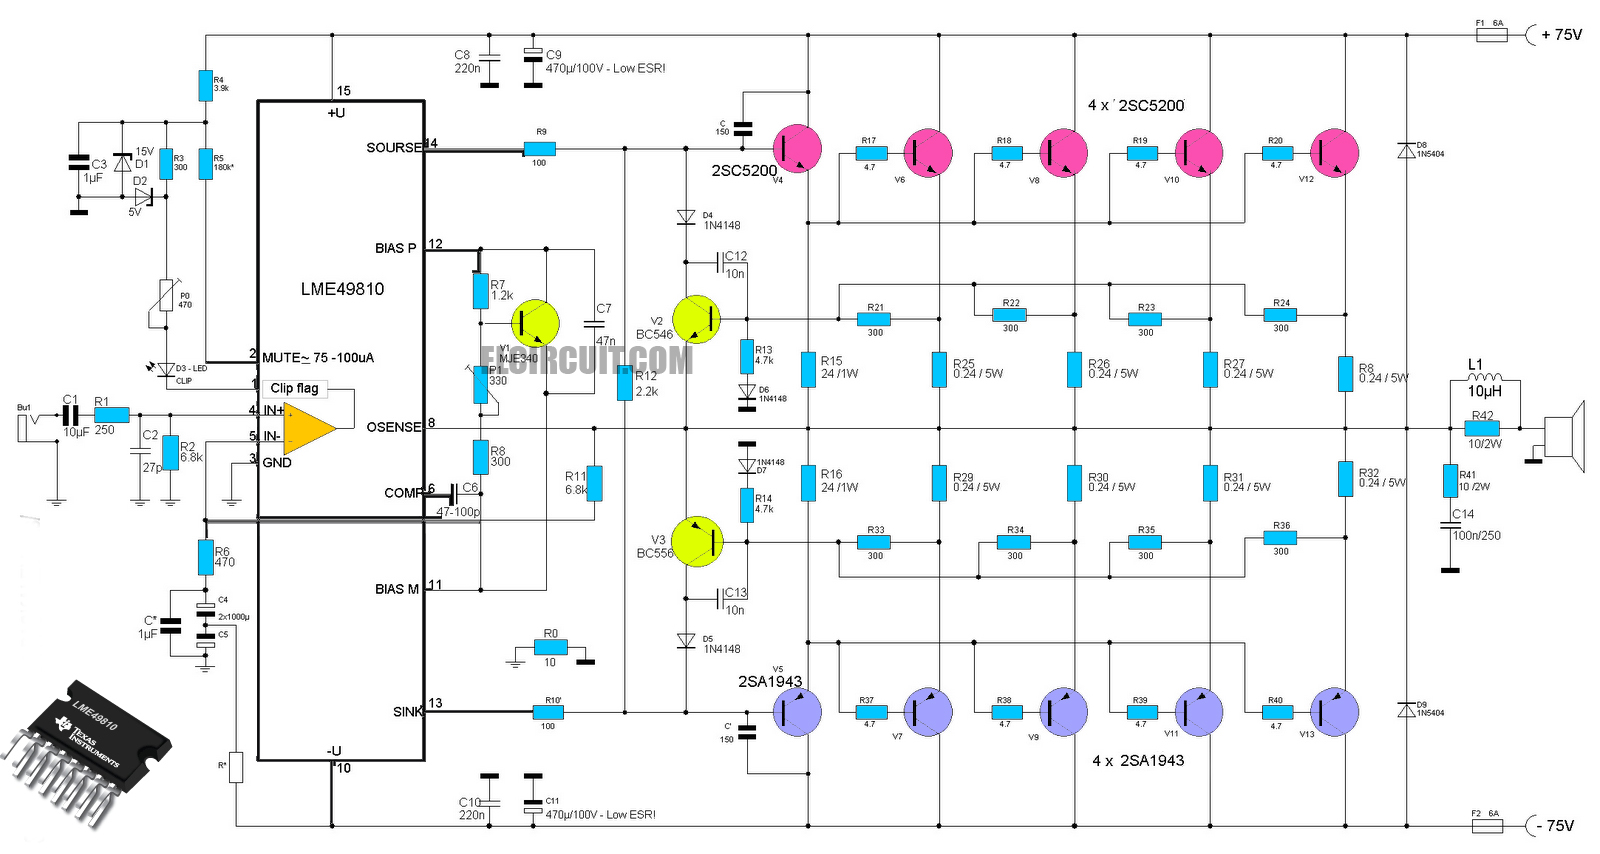 medium resolution of high end power amplifier lme49810 2sc5200 2sa1943 circuit diagram